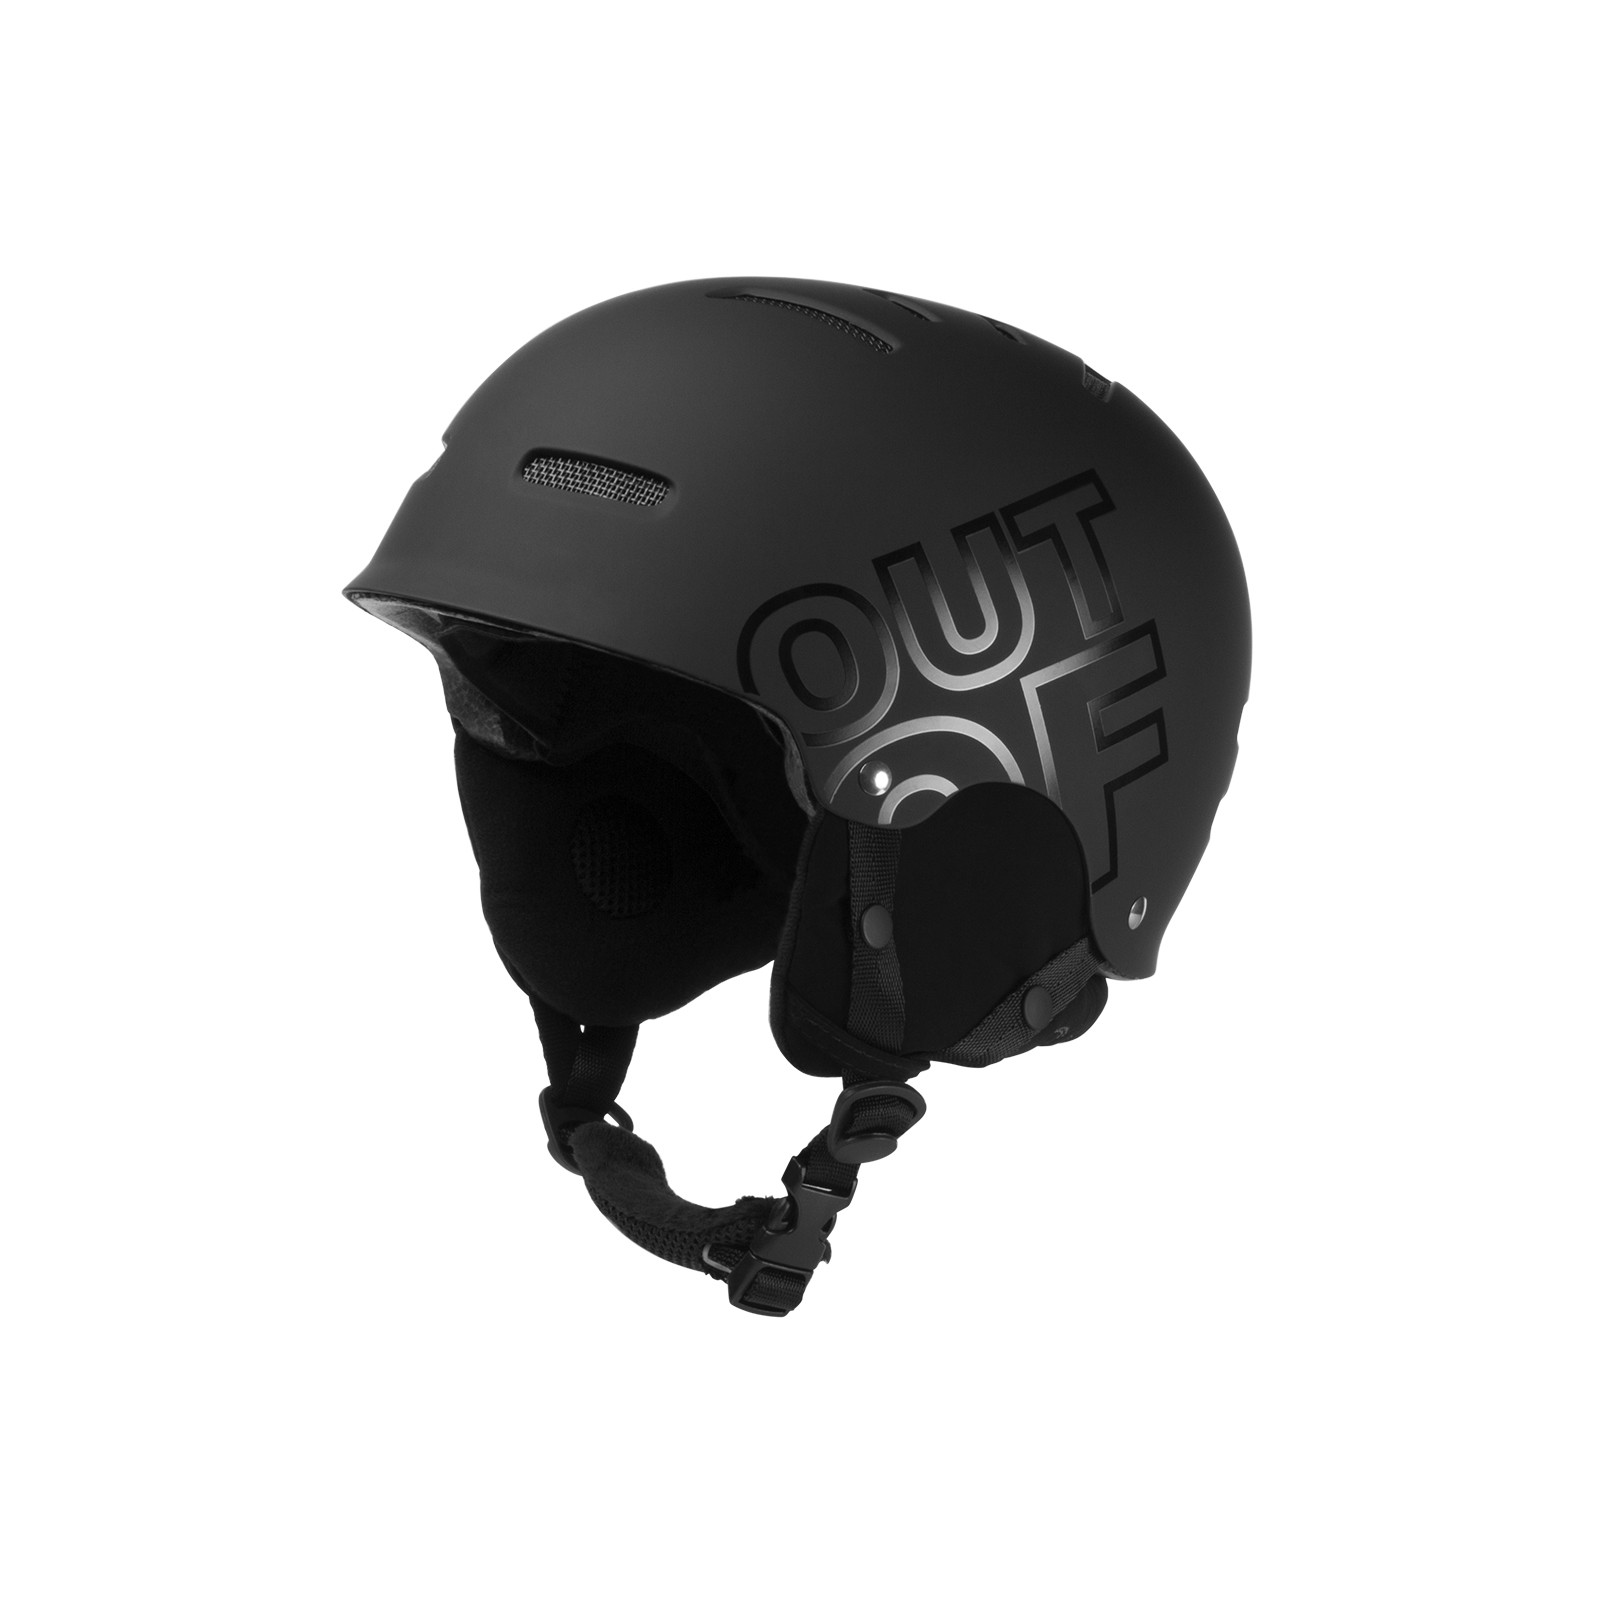 WIPEOUT HELMET Black